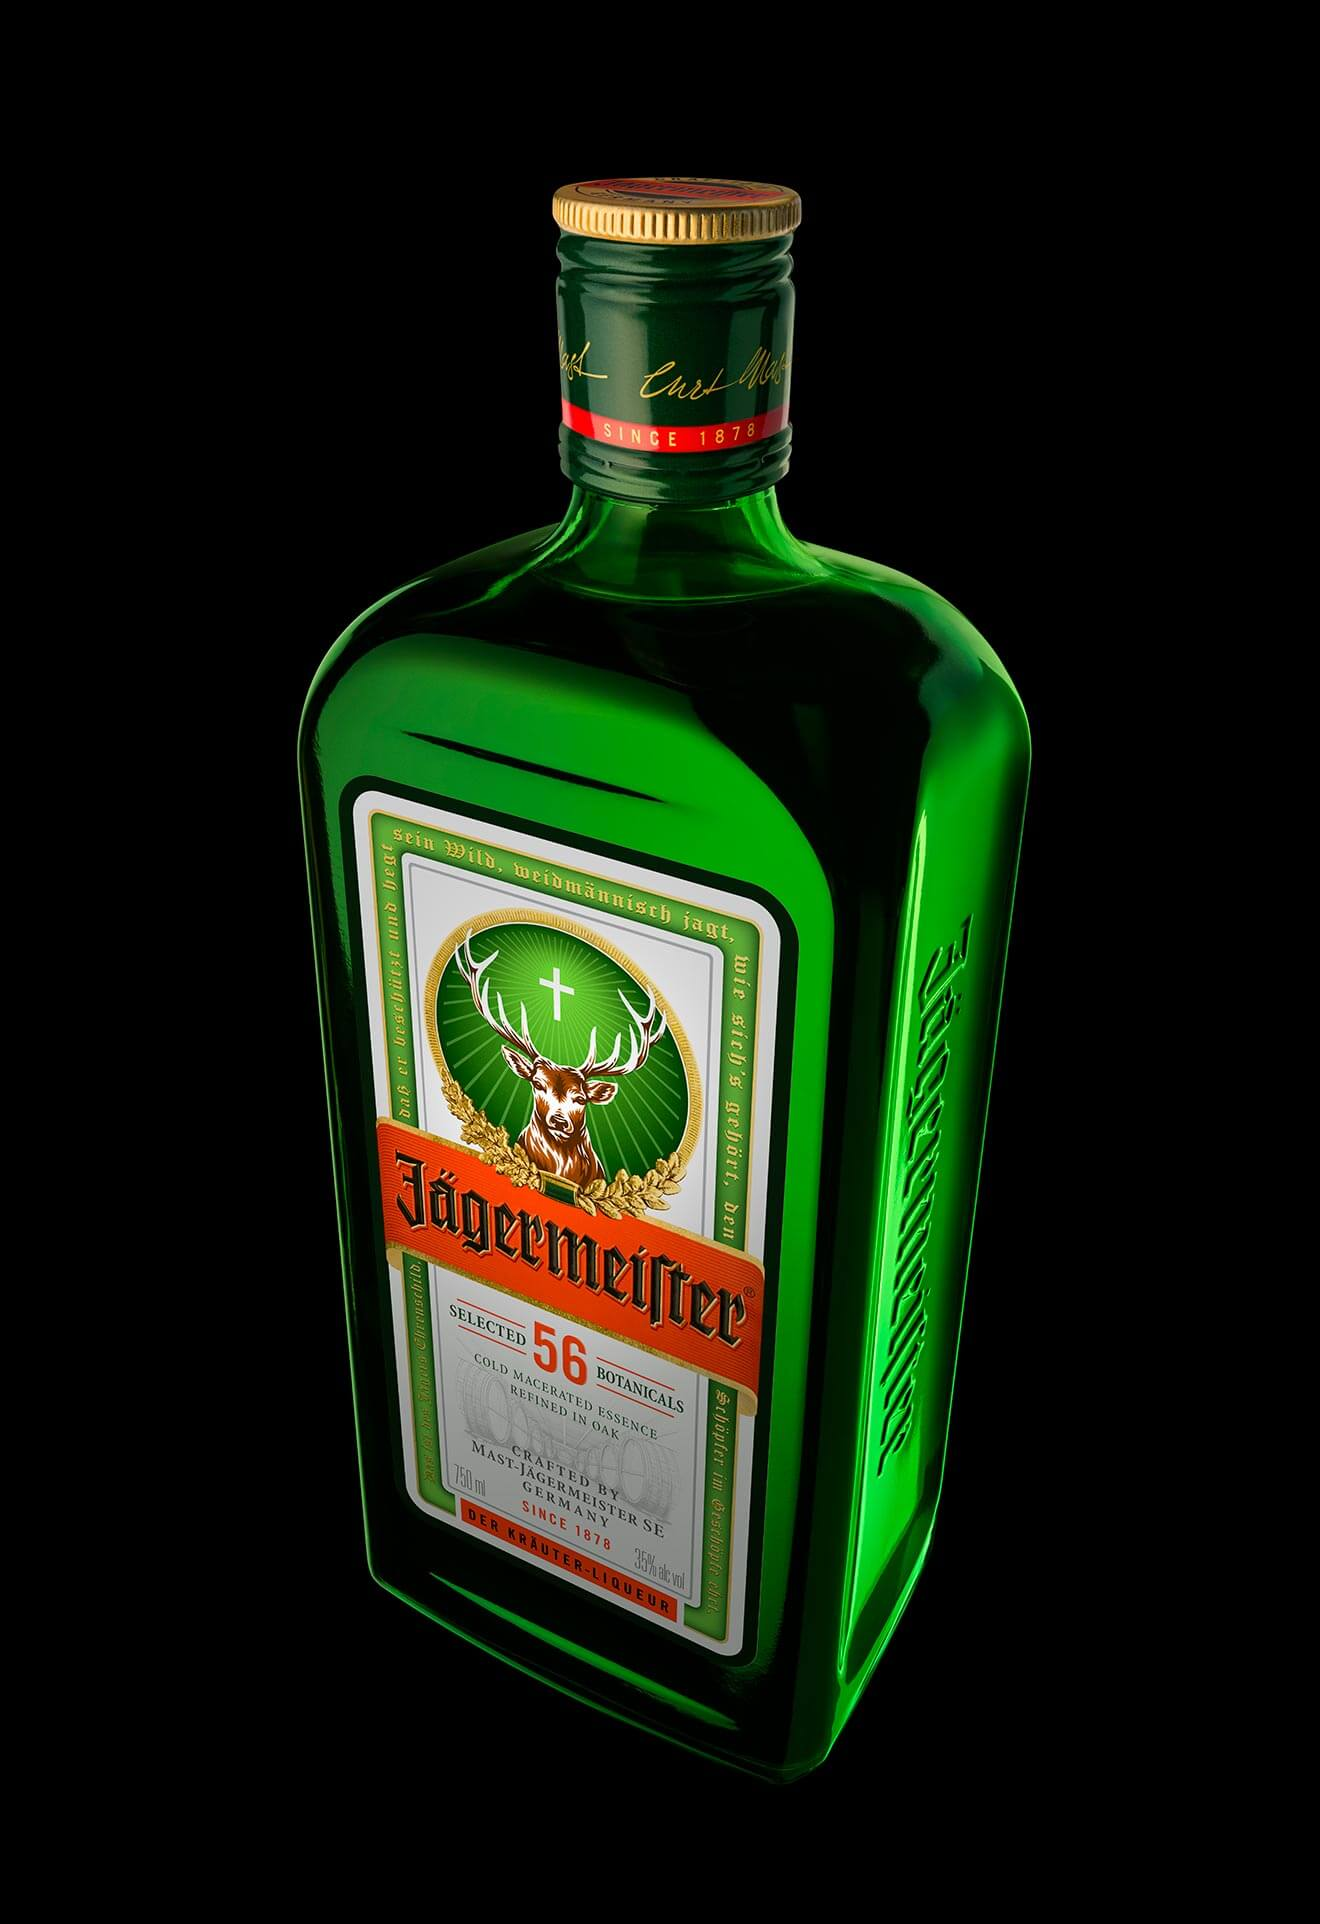 Jägermeister Introduces New Bottle Design, top and shoulders view, new cap